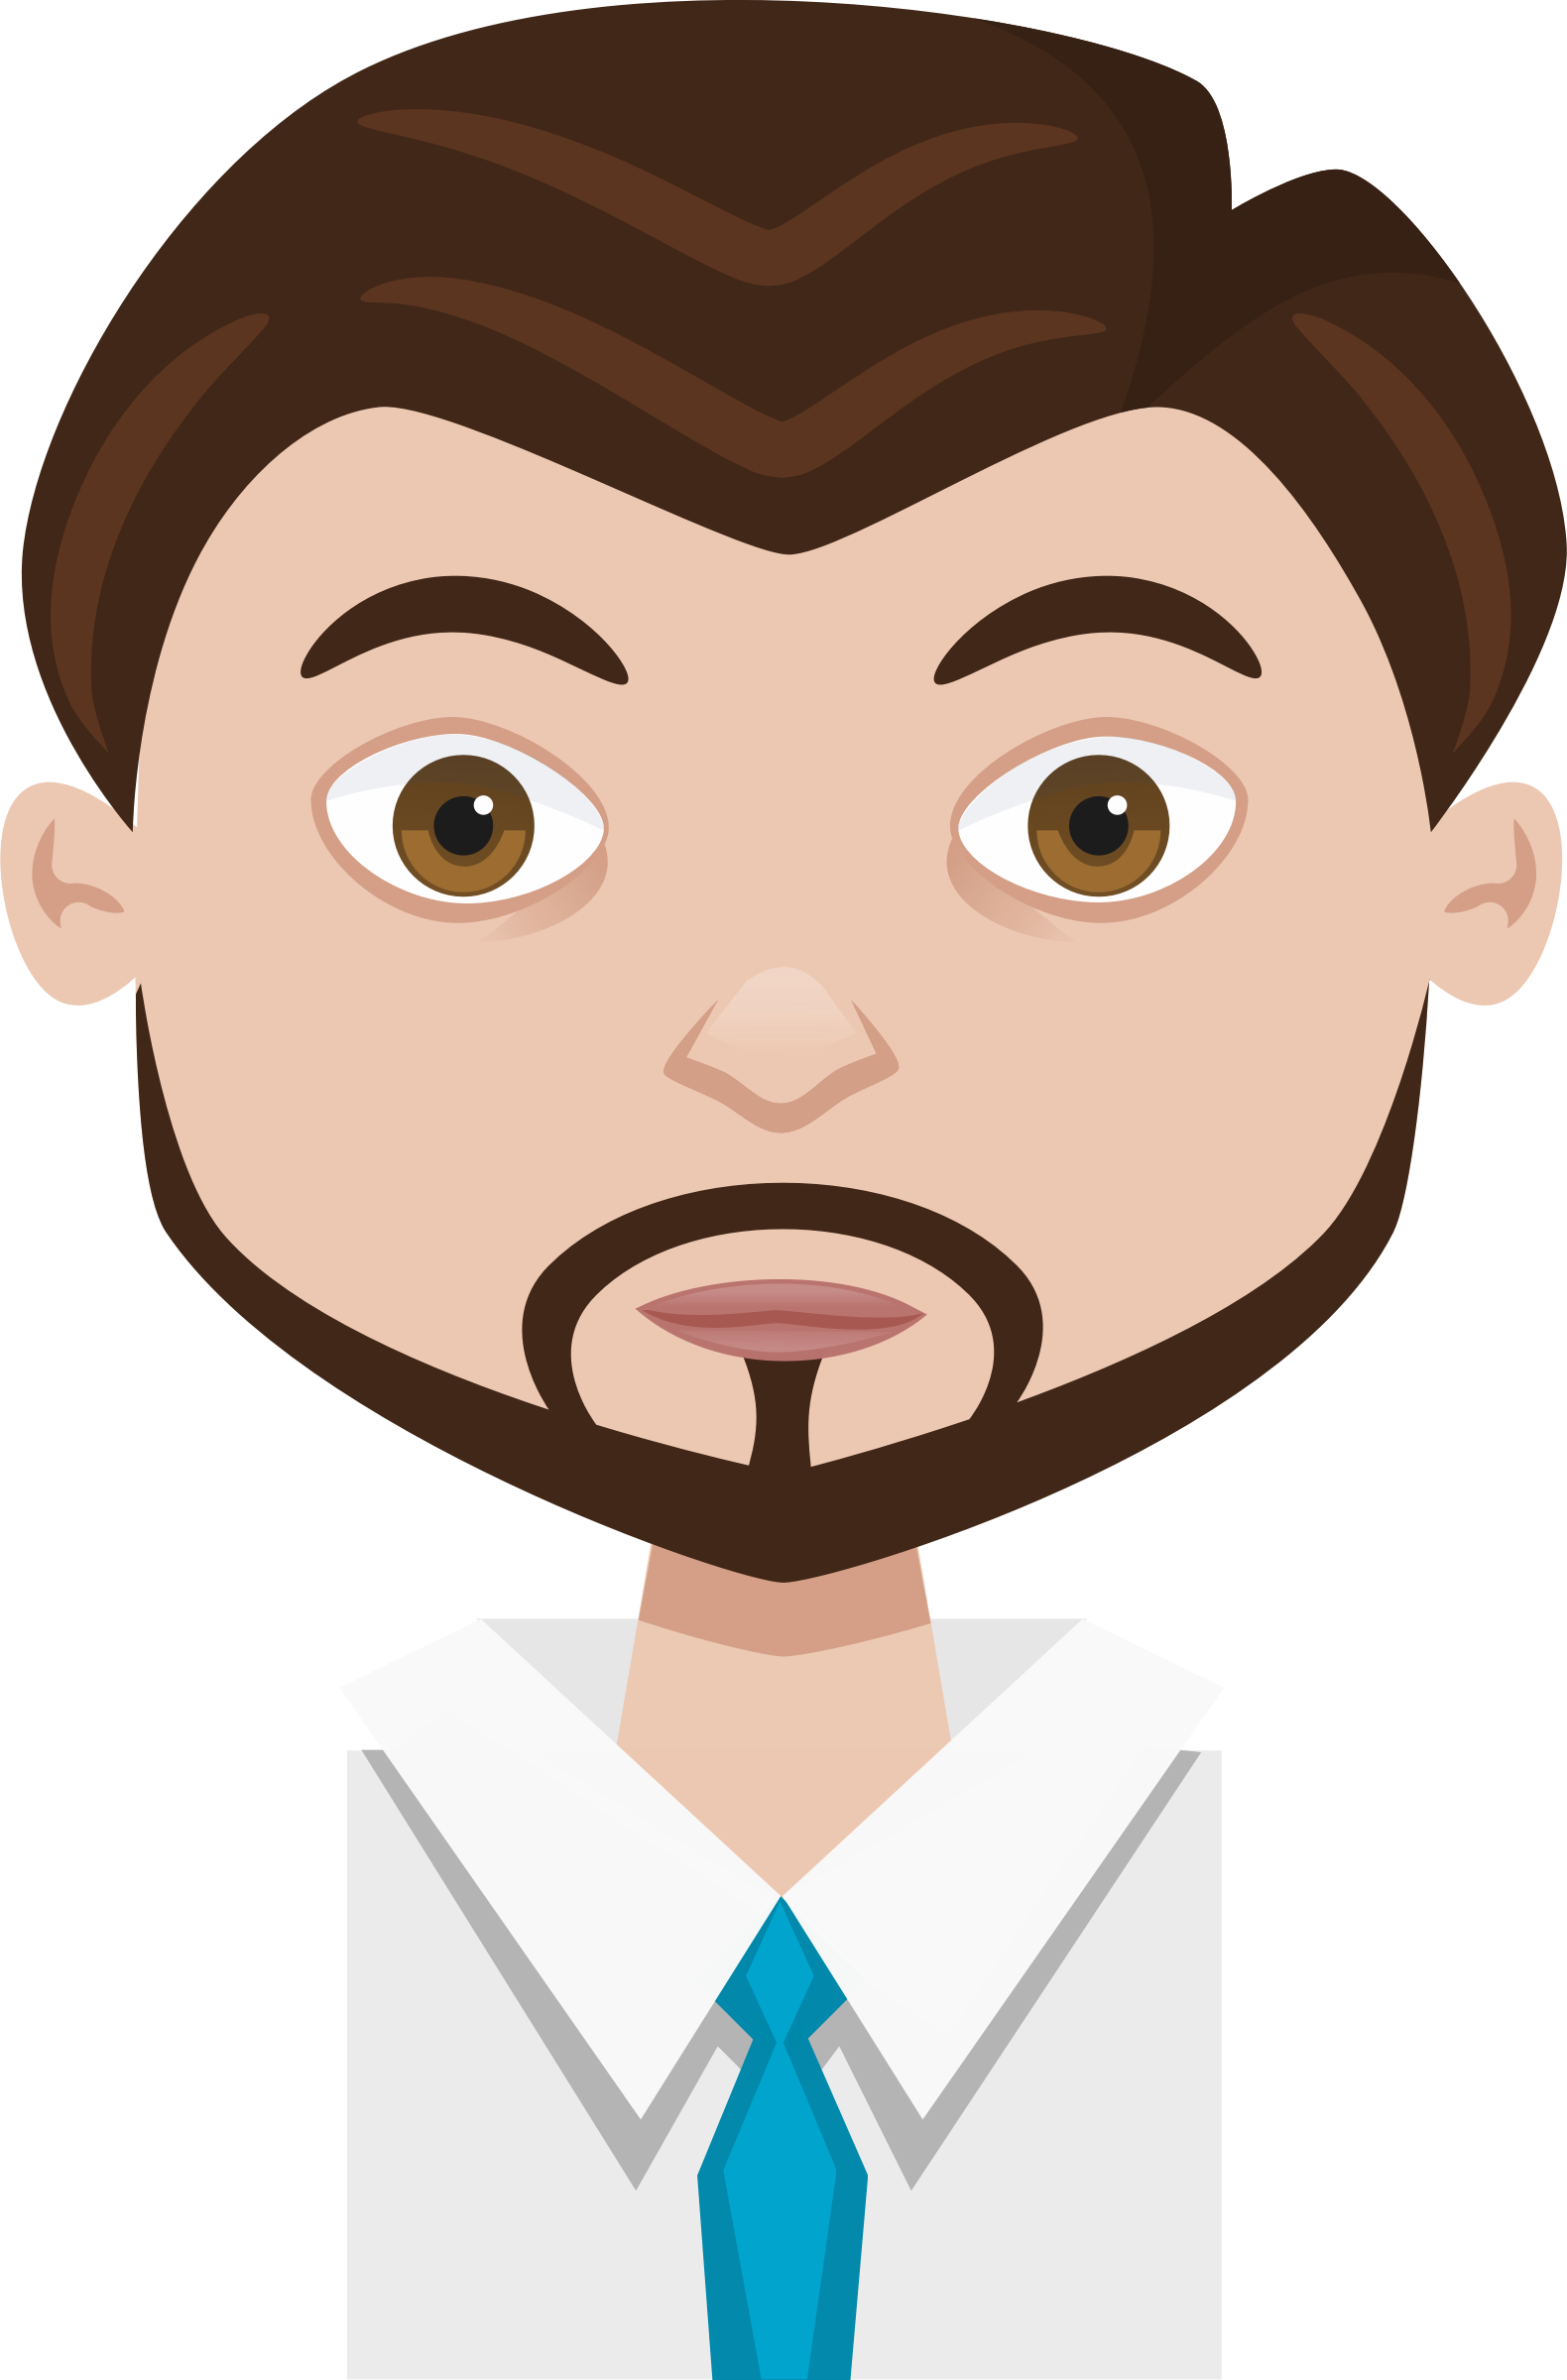 Male avatar png. Cartoon icons free and